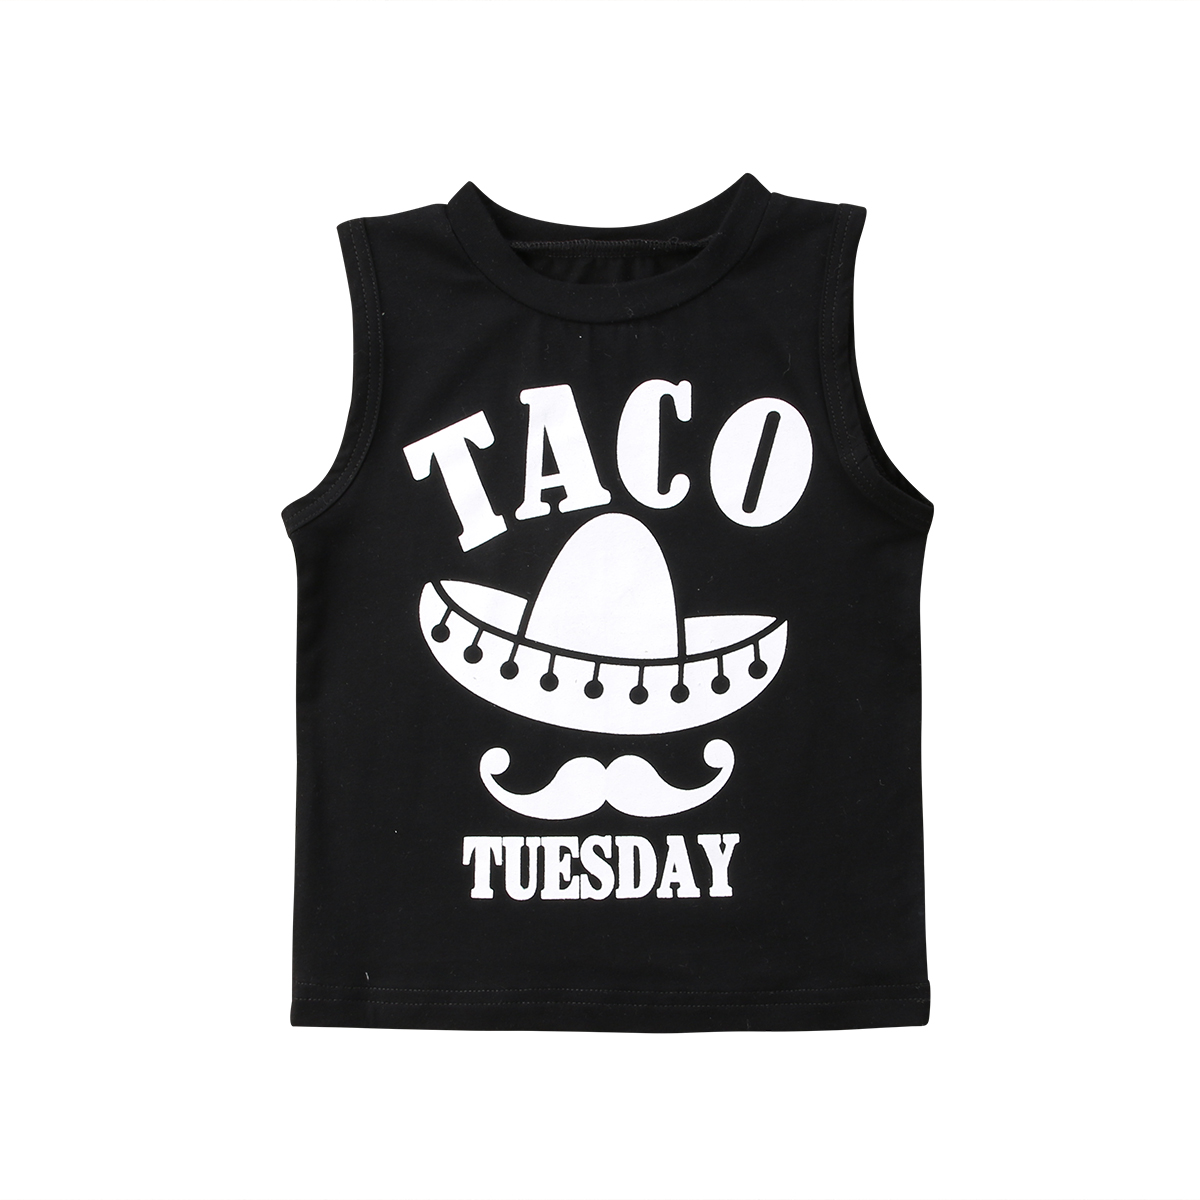 Pudcoco Toddled Baby Kids Boys Girls T Shirt  Vest Taco Black Sleeveless Casual Baby Clothes T Shirts 2018 Summer Hot Sale